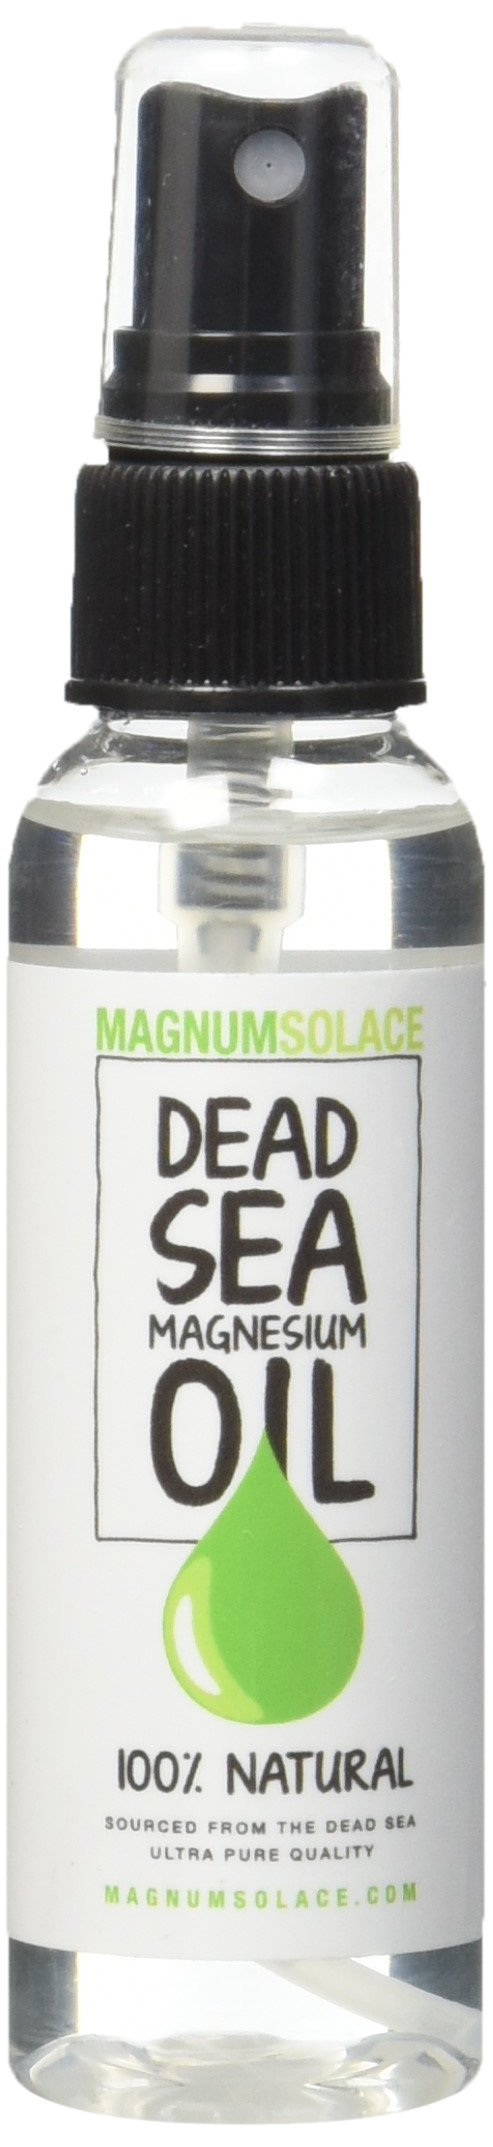 MAGNESIUM OIL 100% PURE NATURAL Dead Sea Minerals - Exceptional #1 Source - Made in the USA - BIG (2 oz)